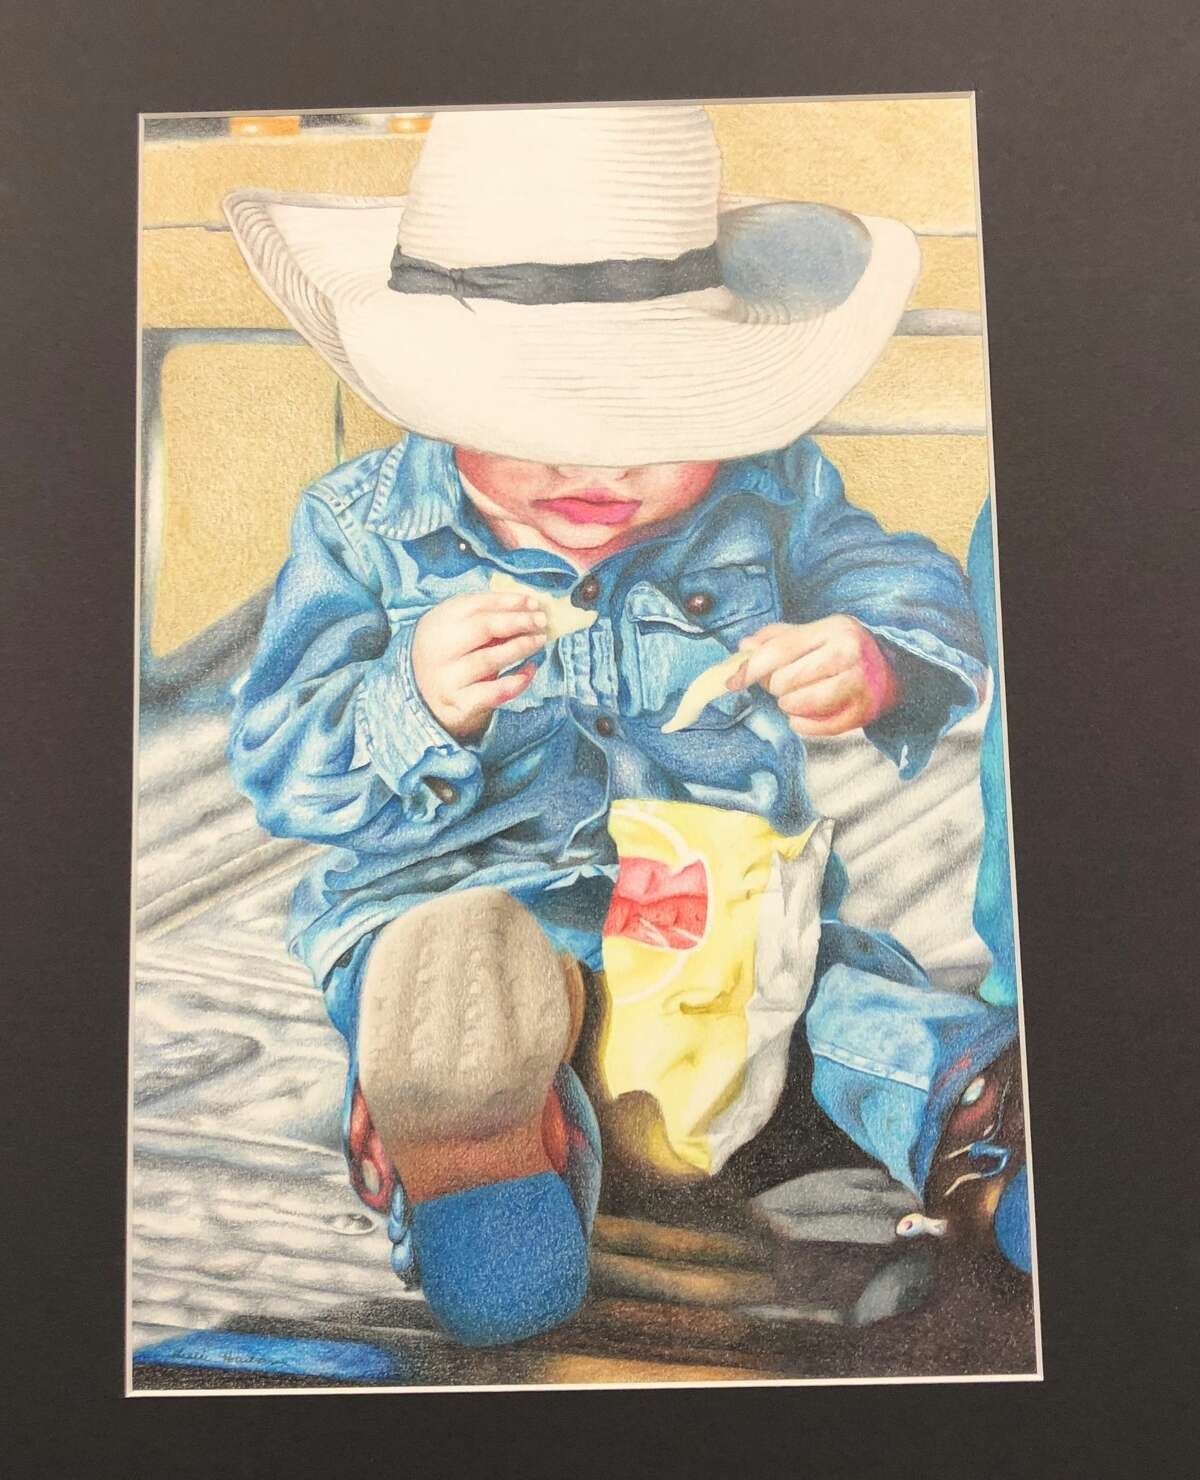 This piece of art by Leslie Hartman is the 2019 Congressional Art Competition winner for District 28.